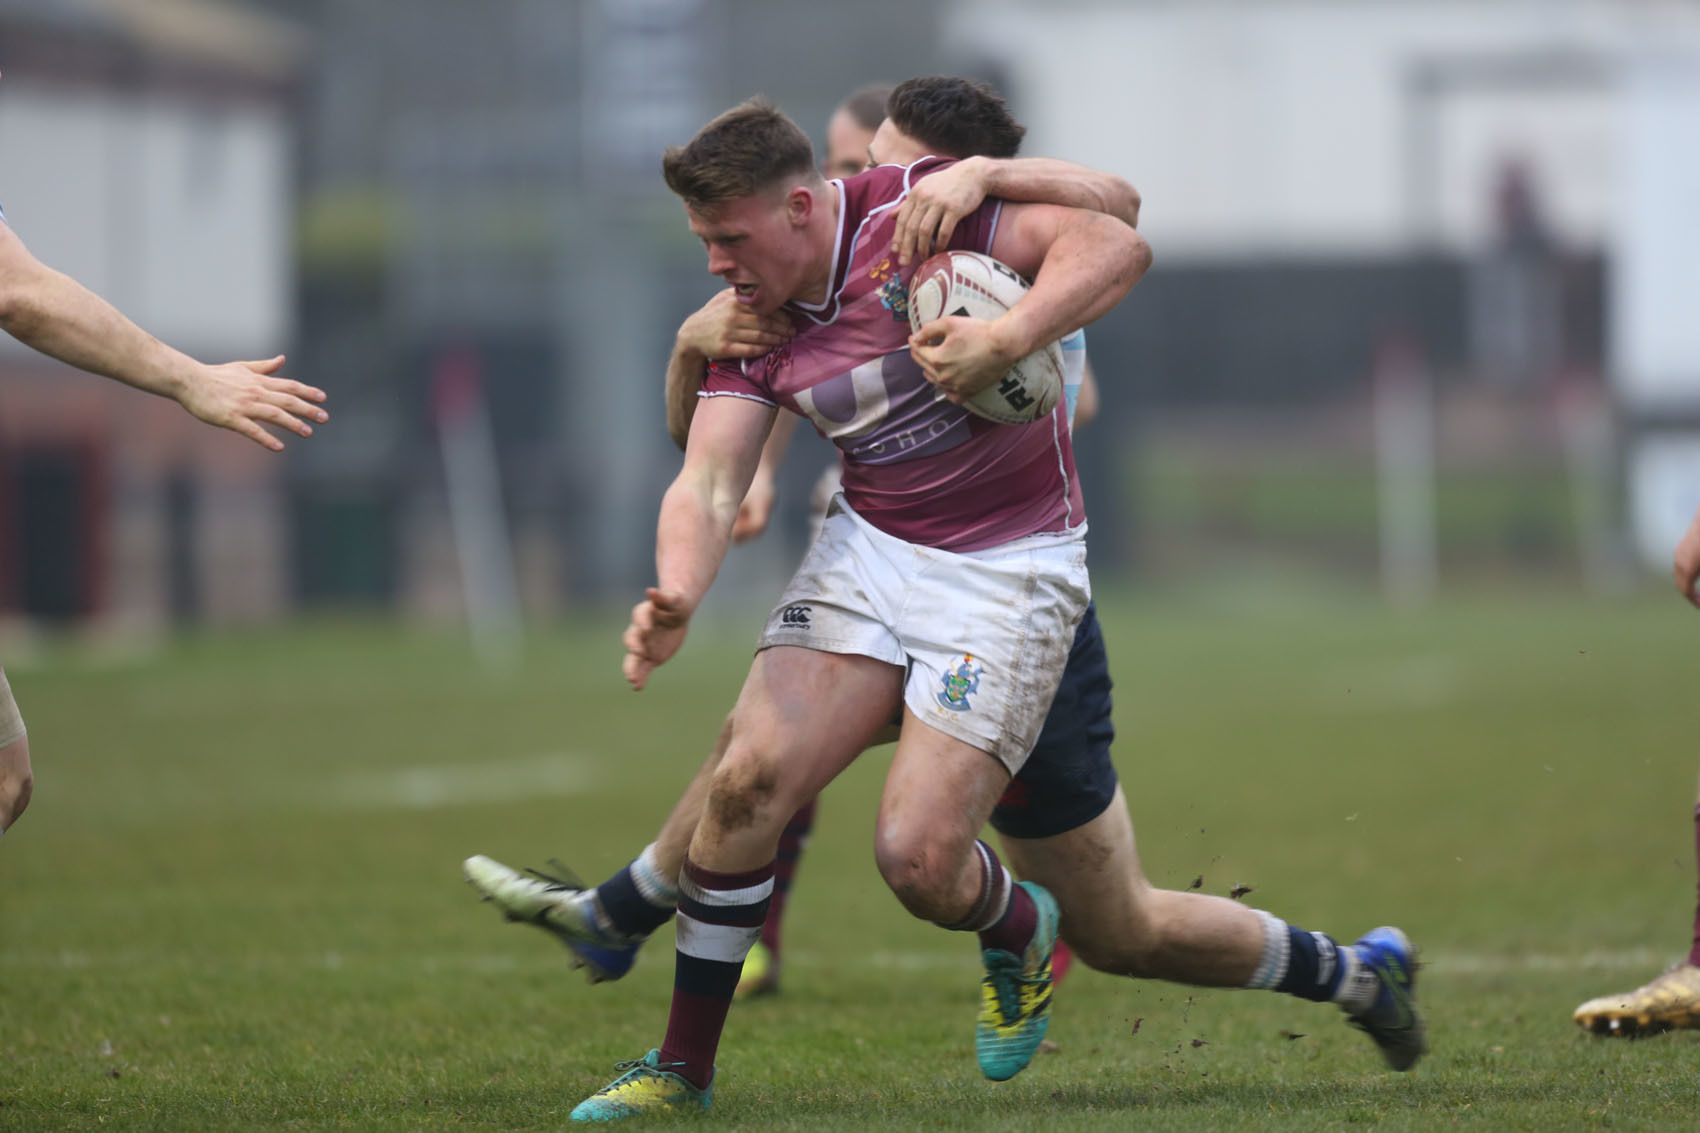 Watsonians triumphed at Langholm 7s. Photo: Helen Barrington